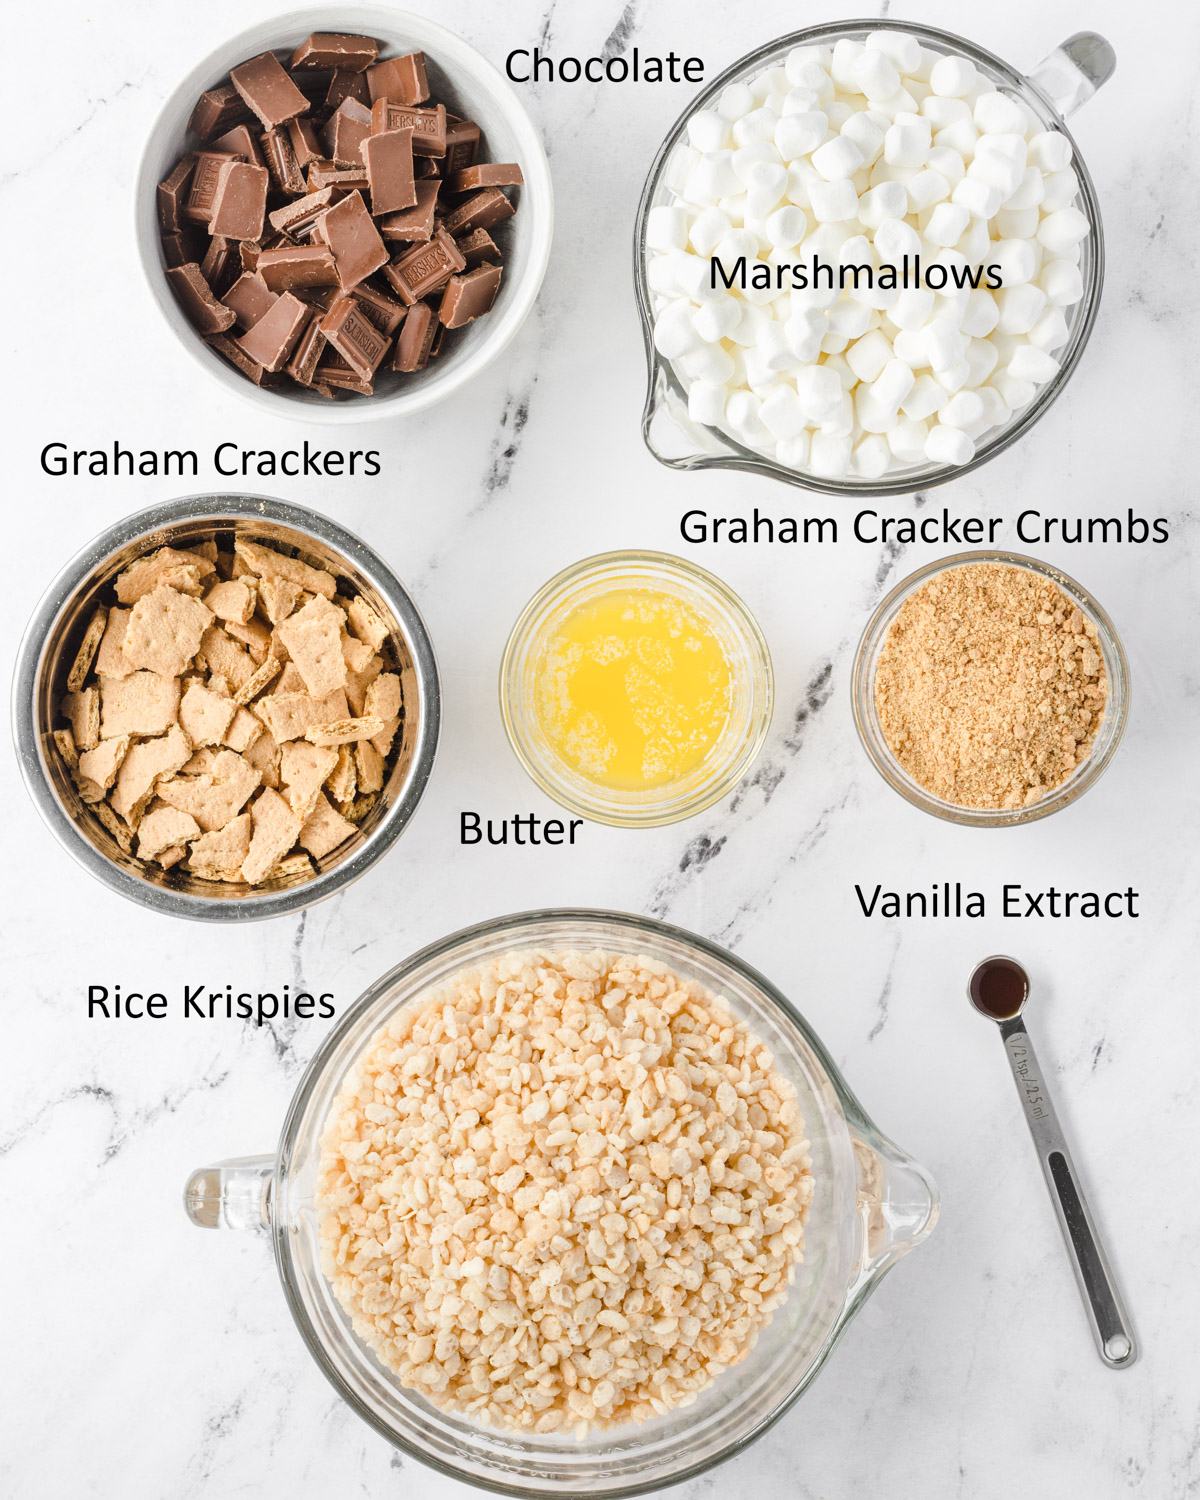 Labeled ingredients for s'mores rice krispie treats.